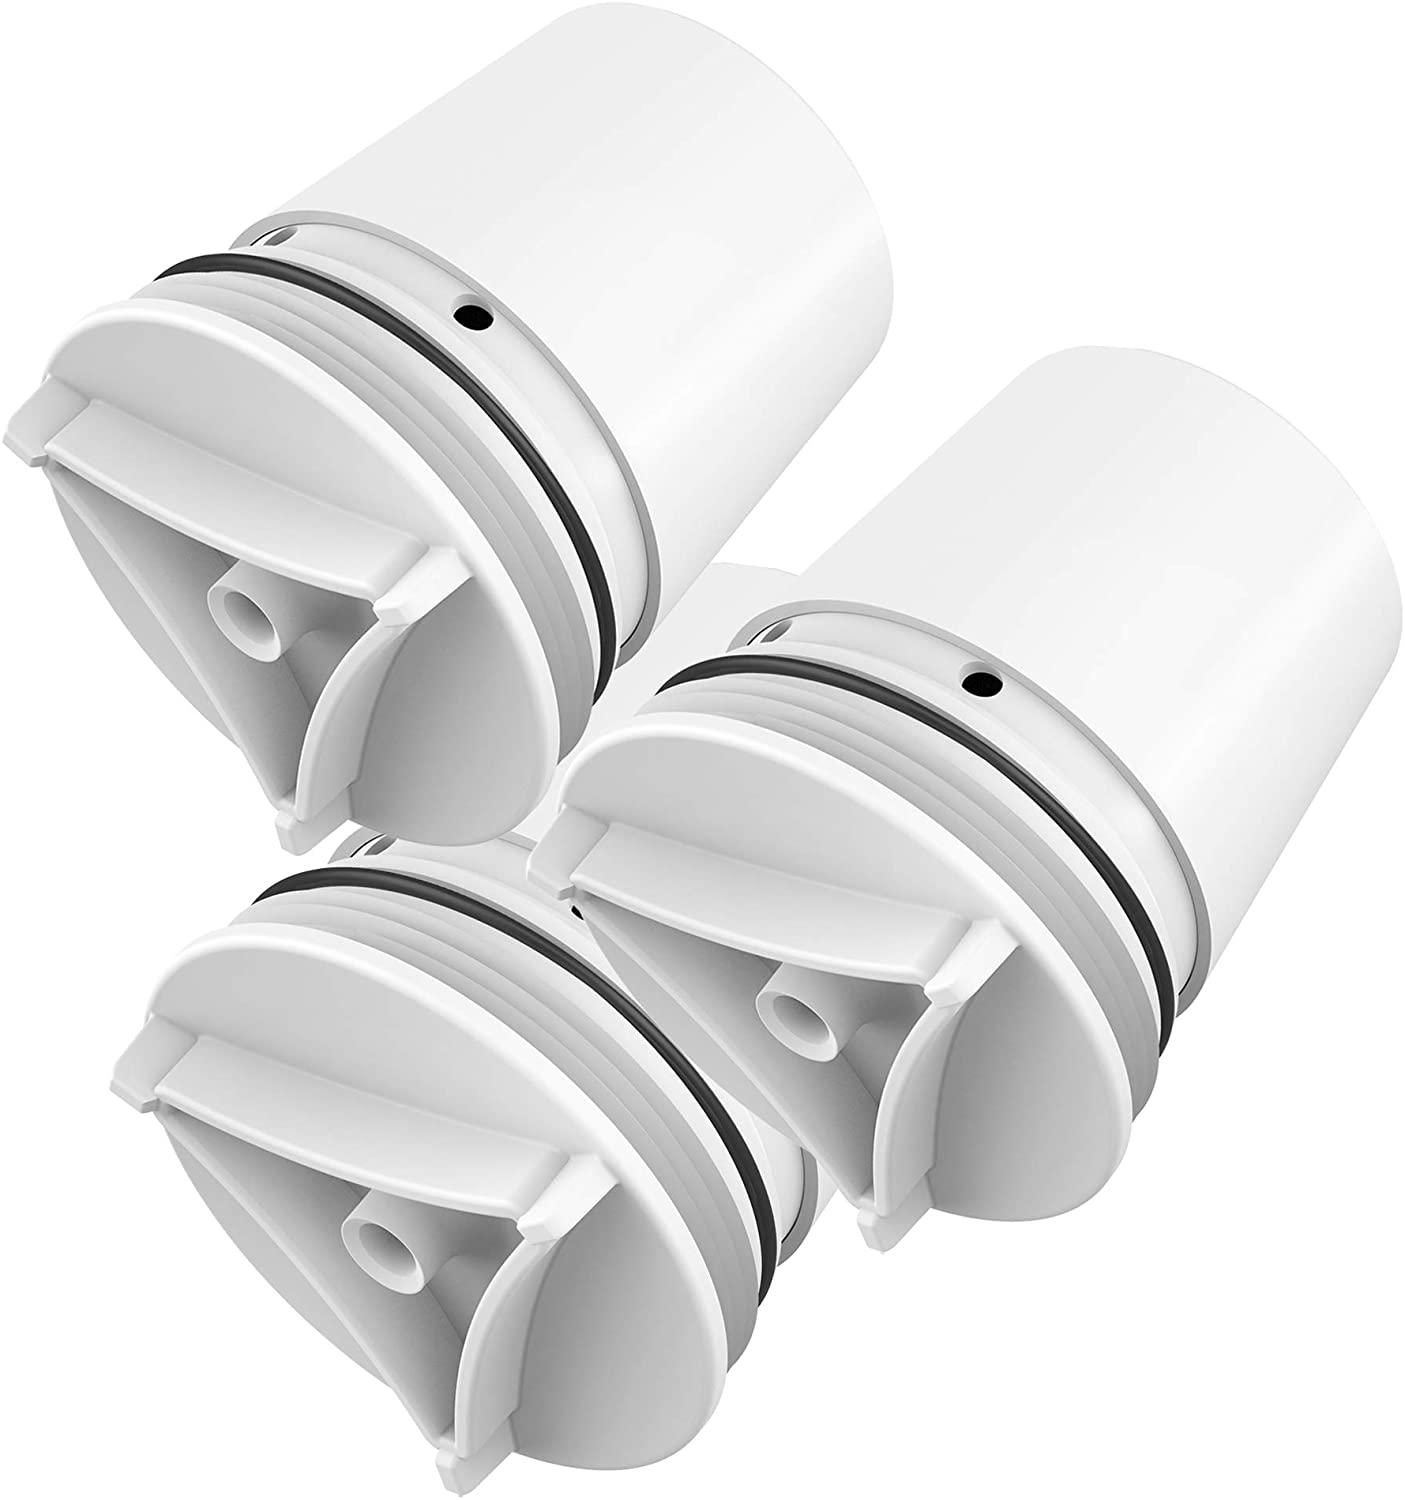 Waterdrop FM-15RA Faucet Water Filter, Compatible with Culligan FM-15RA Water Filter, Culligan FM-15A Filtration System, White Finish (Pack of 3)